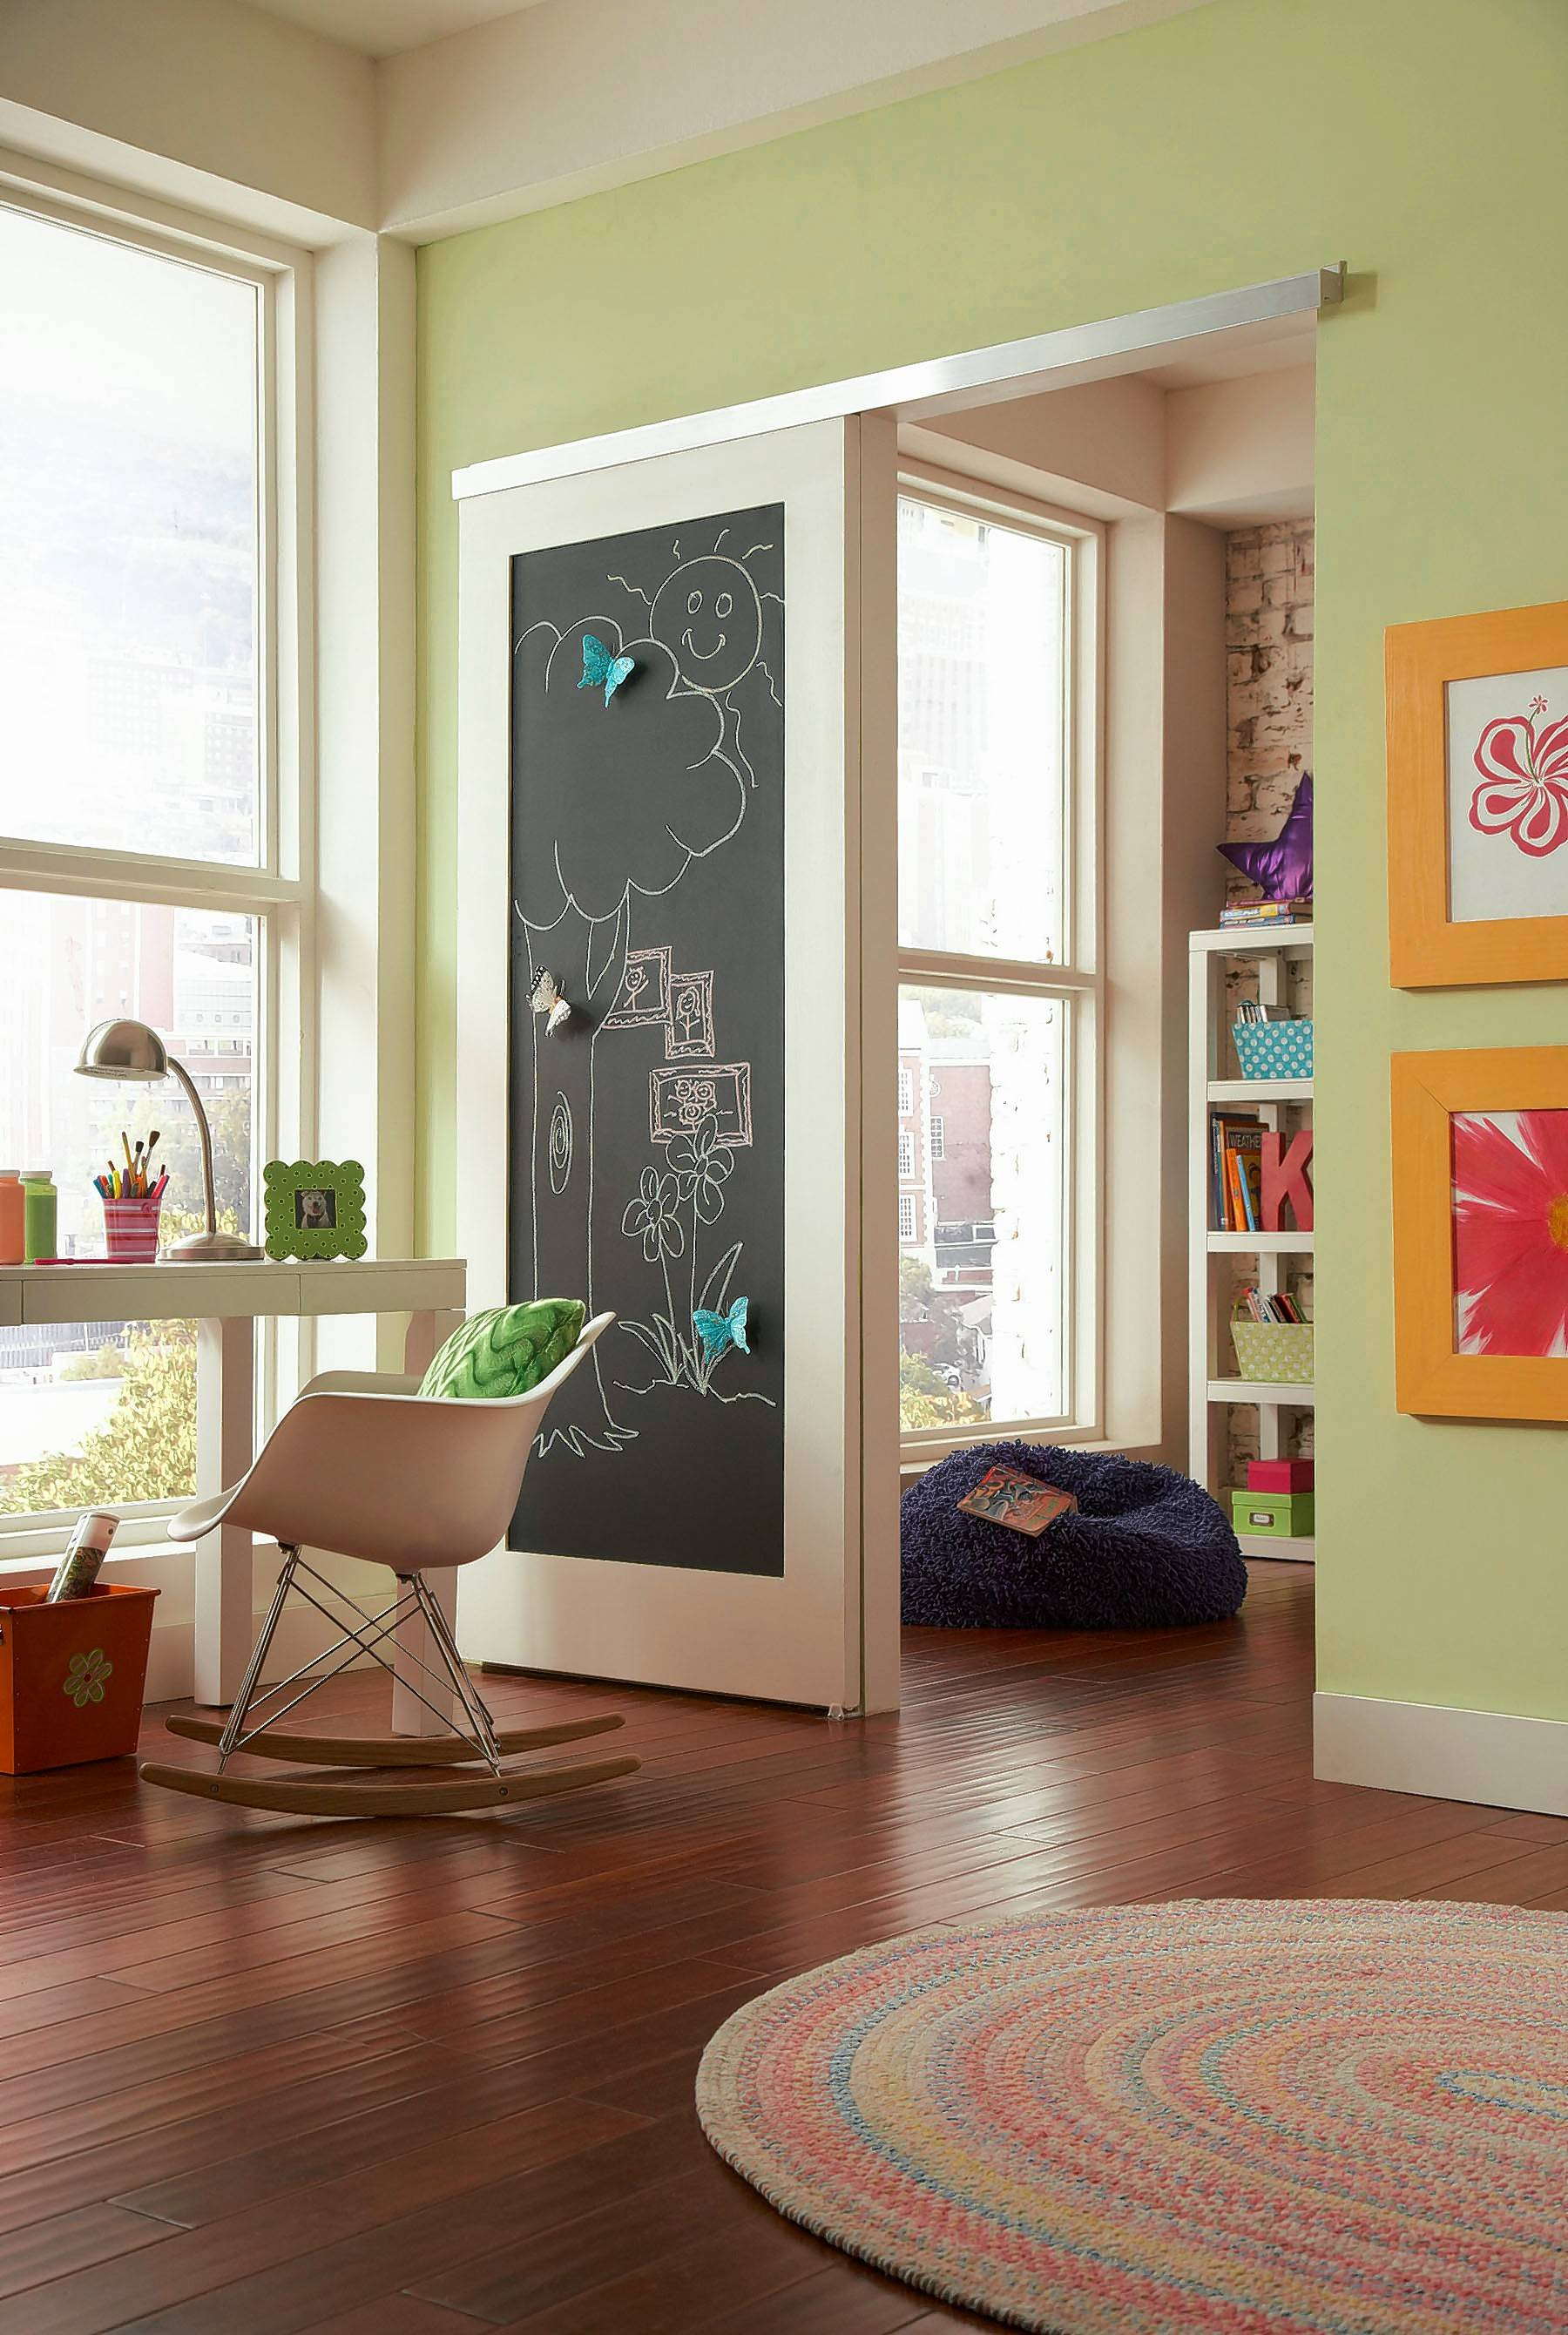 Sliding barn doors can add a fun blackboard wall space for playrooms. & Barn doors add style to space Pezcame.Com